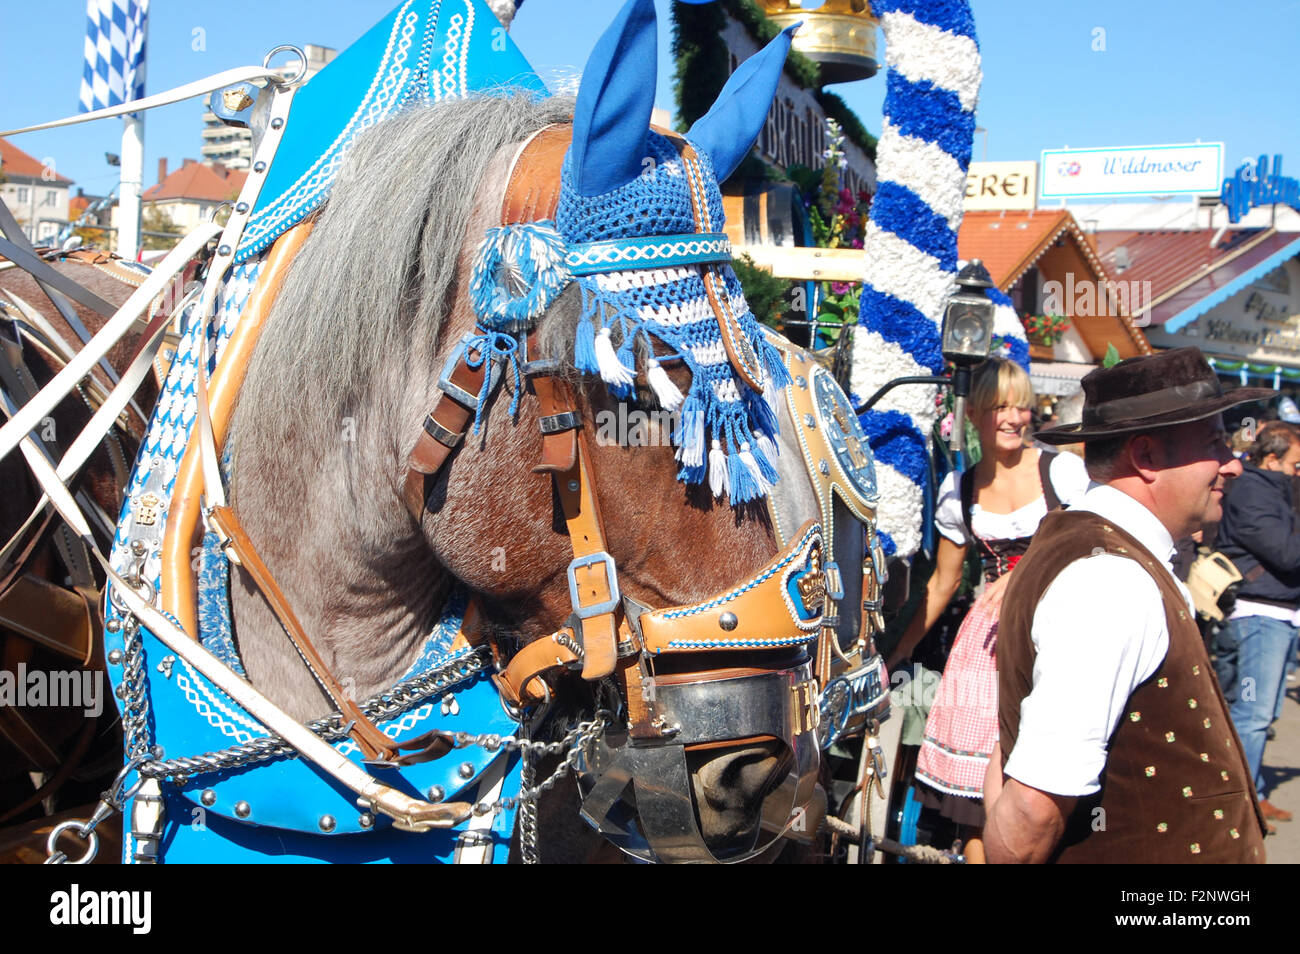 Horse of the Hofbräu brewery pulling beer kegs at the Oktoberfest, Munich, Germany - Stock Image